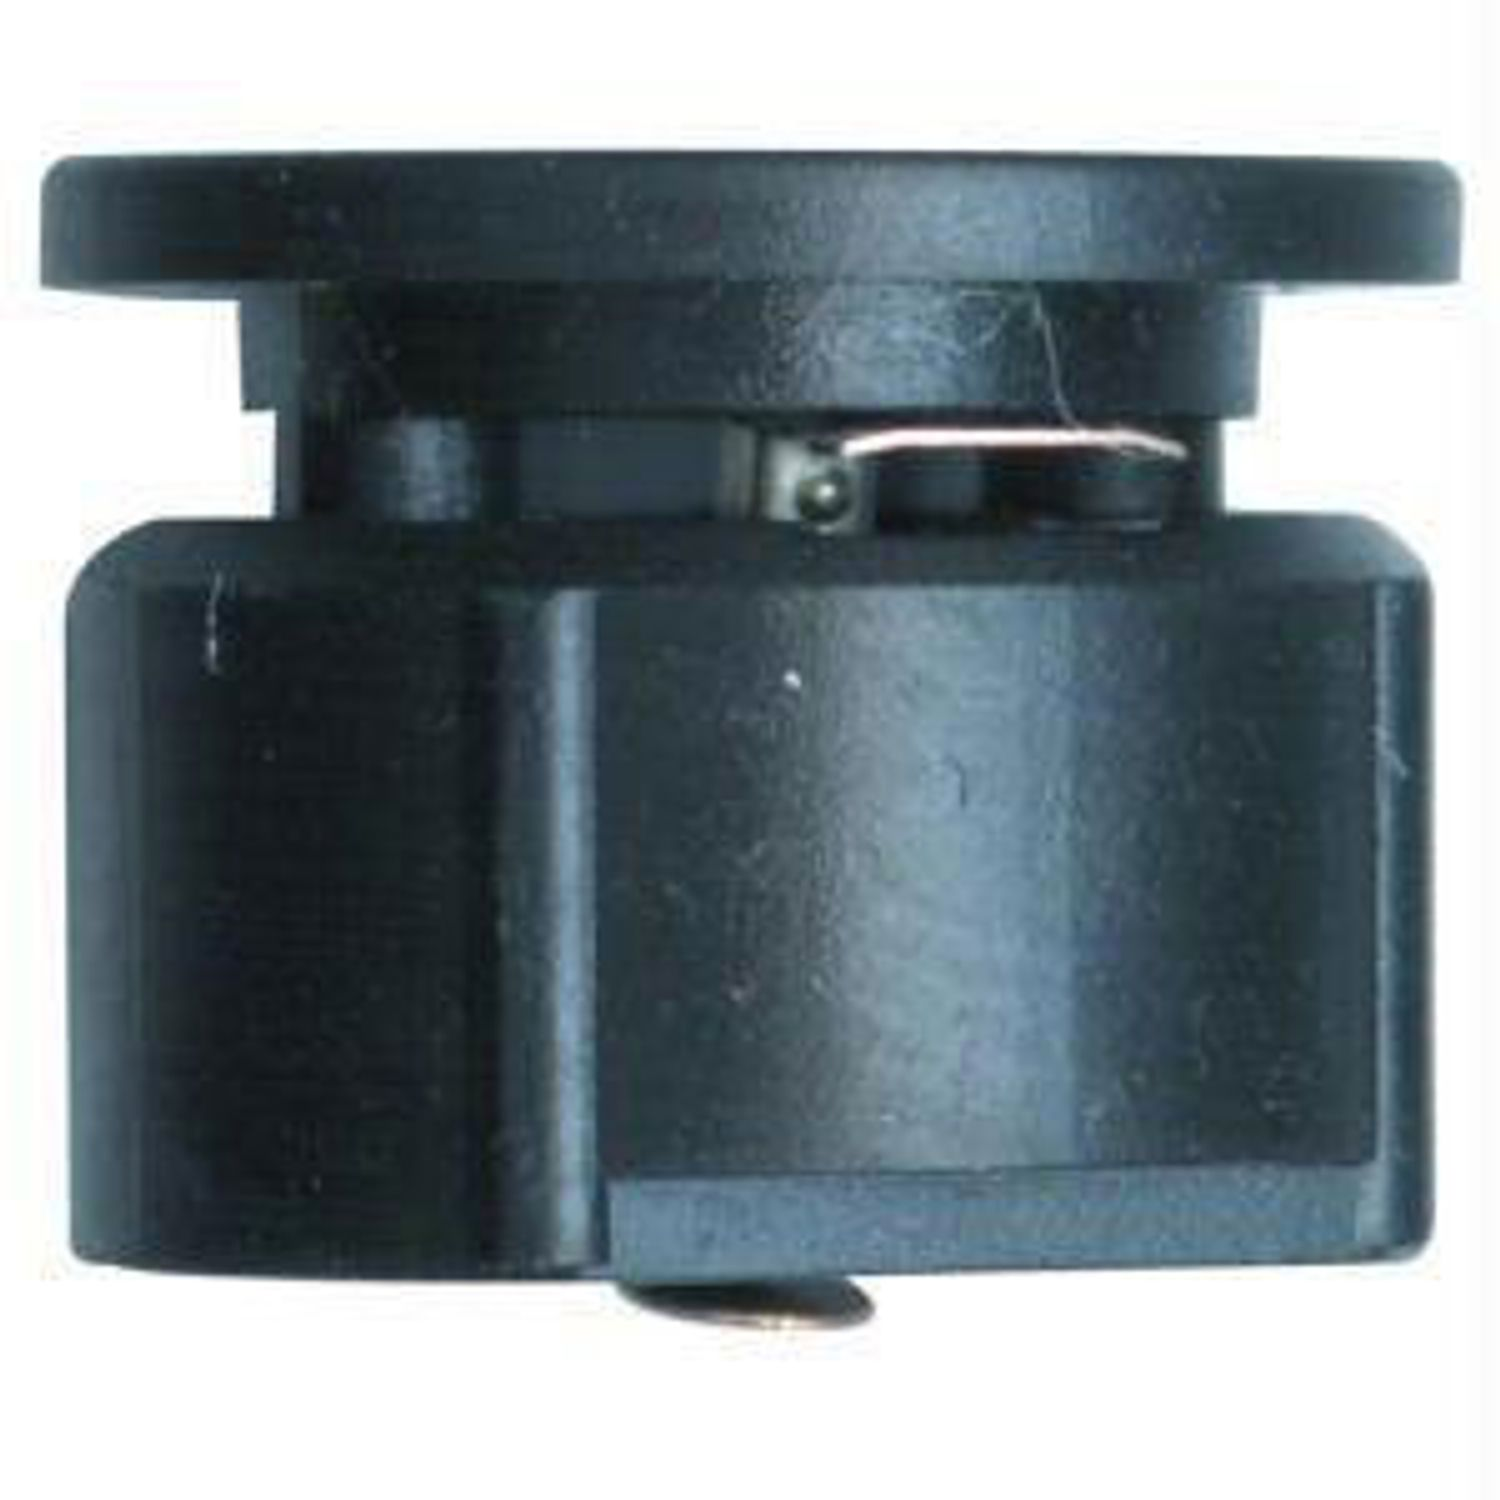 MagLite Replacement Switch Assembly D-Cell 108-000-208